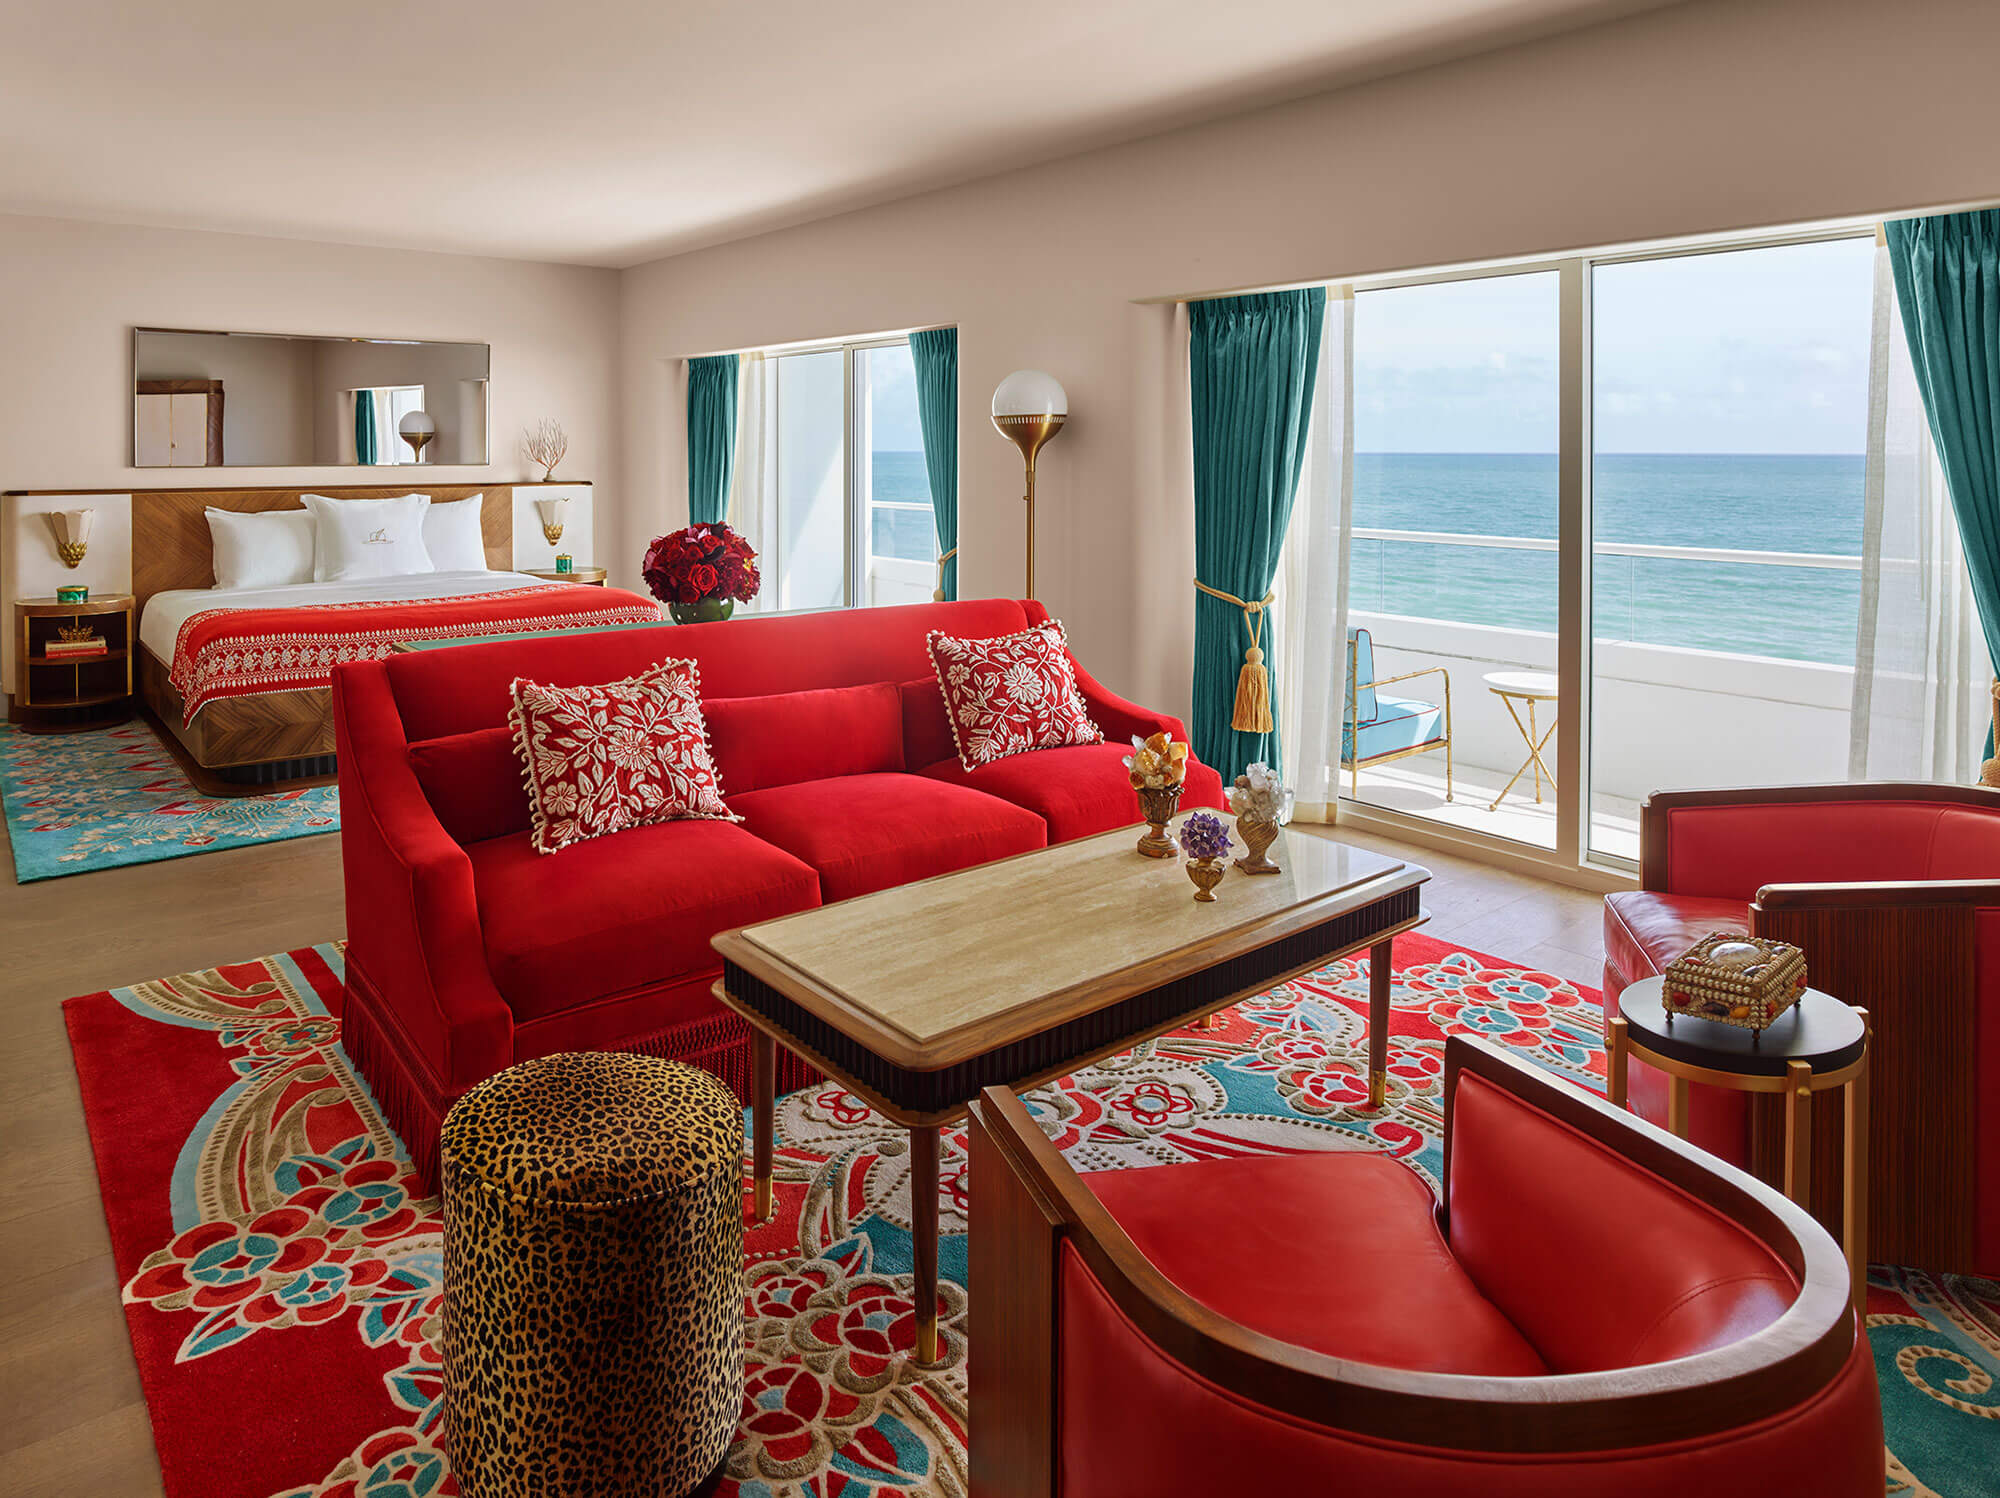 07_Rooms_Faena_hotel_807_RGB_Premier-Ocean-Front-Junior-Suite.jpg